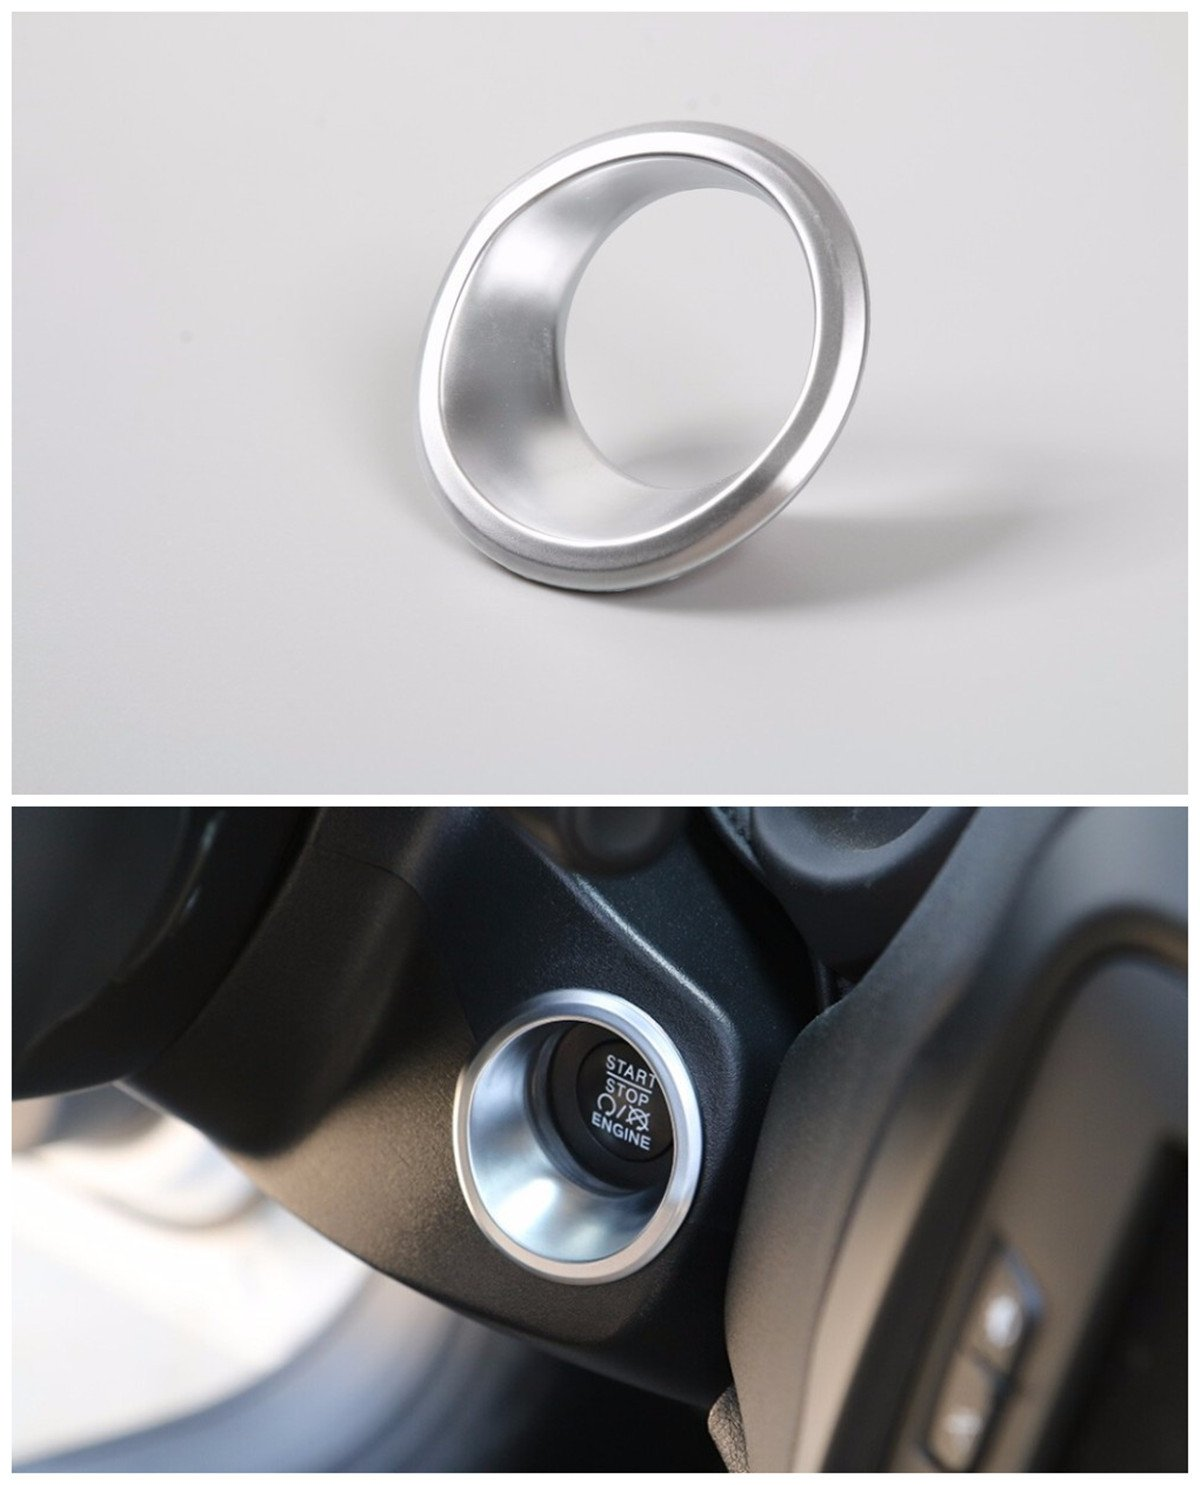 FMtoppeak Silver ABS Outlet Engine Start Stop Push Button Trim Ring Cover for 2014-2018 Jeep Renegade